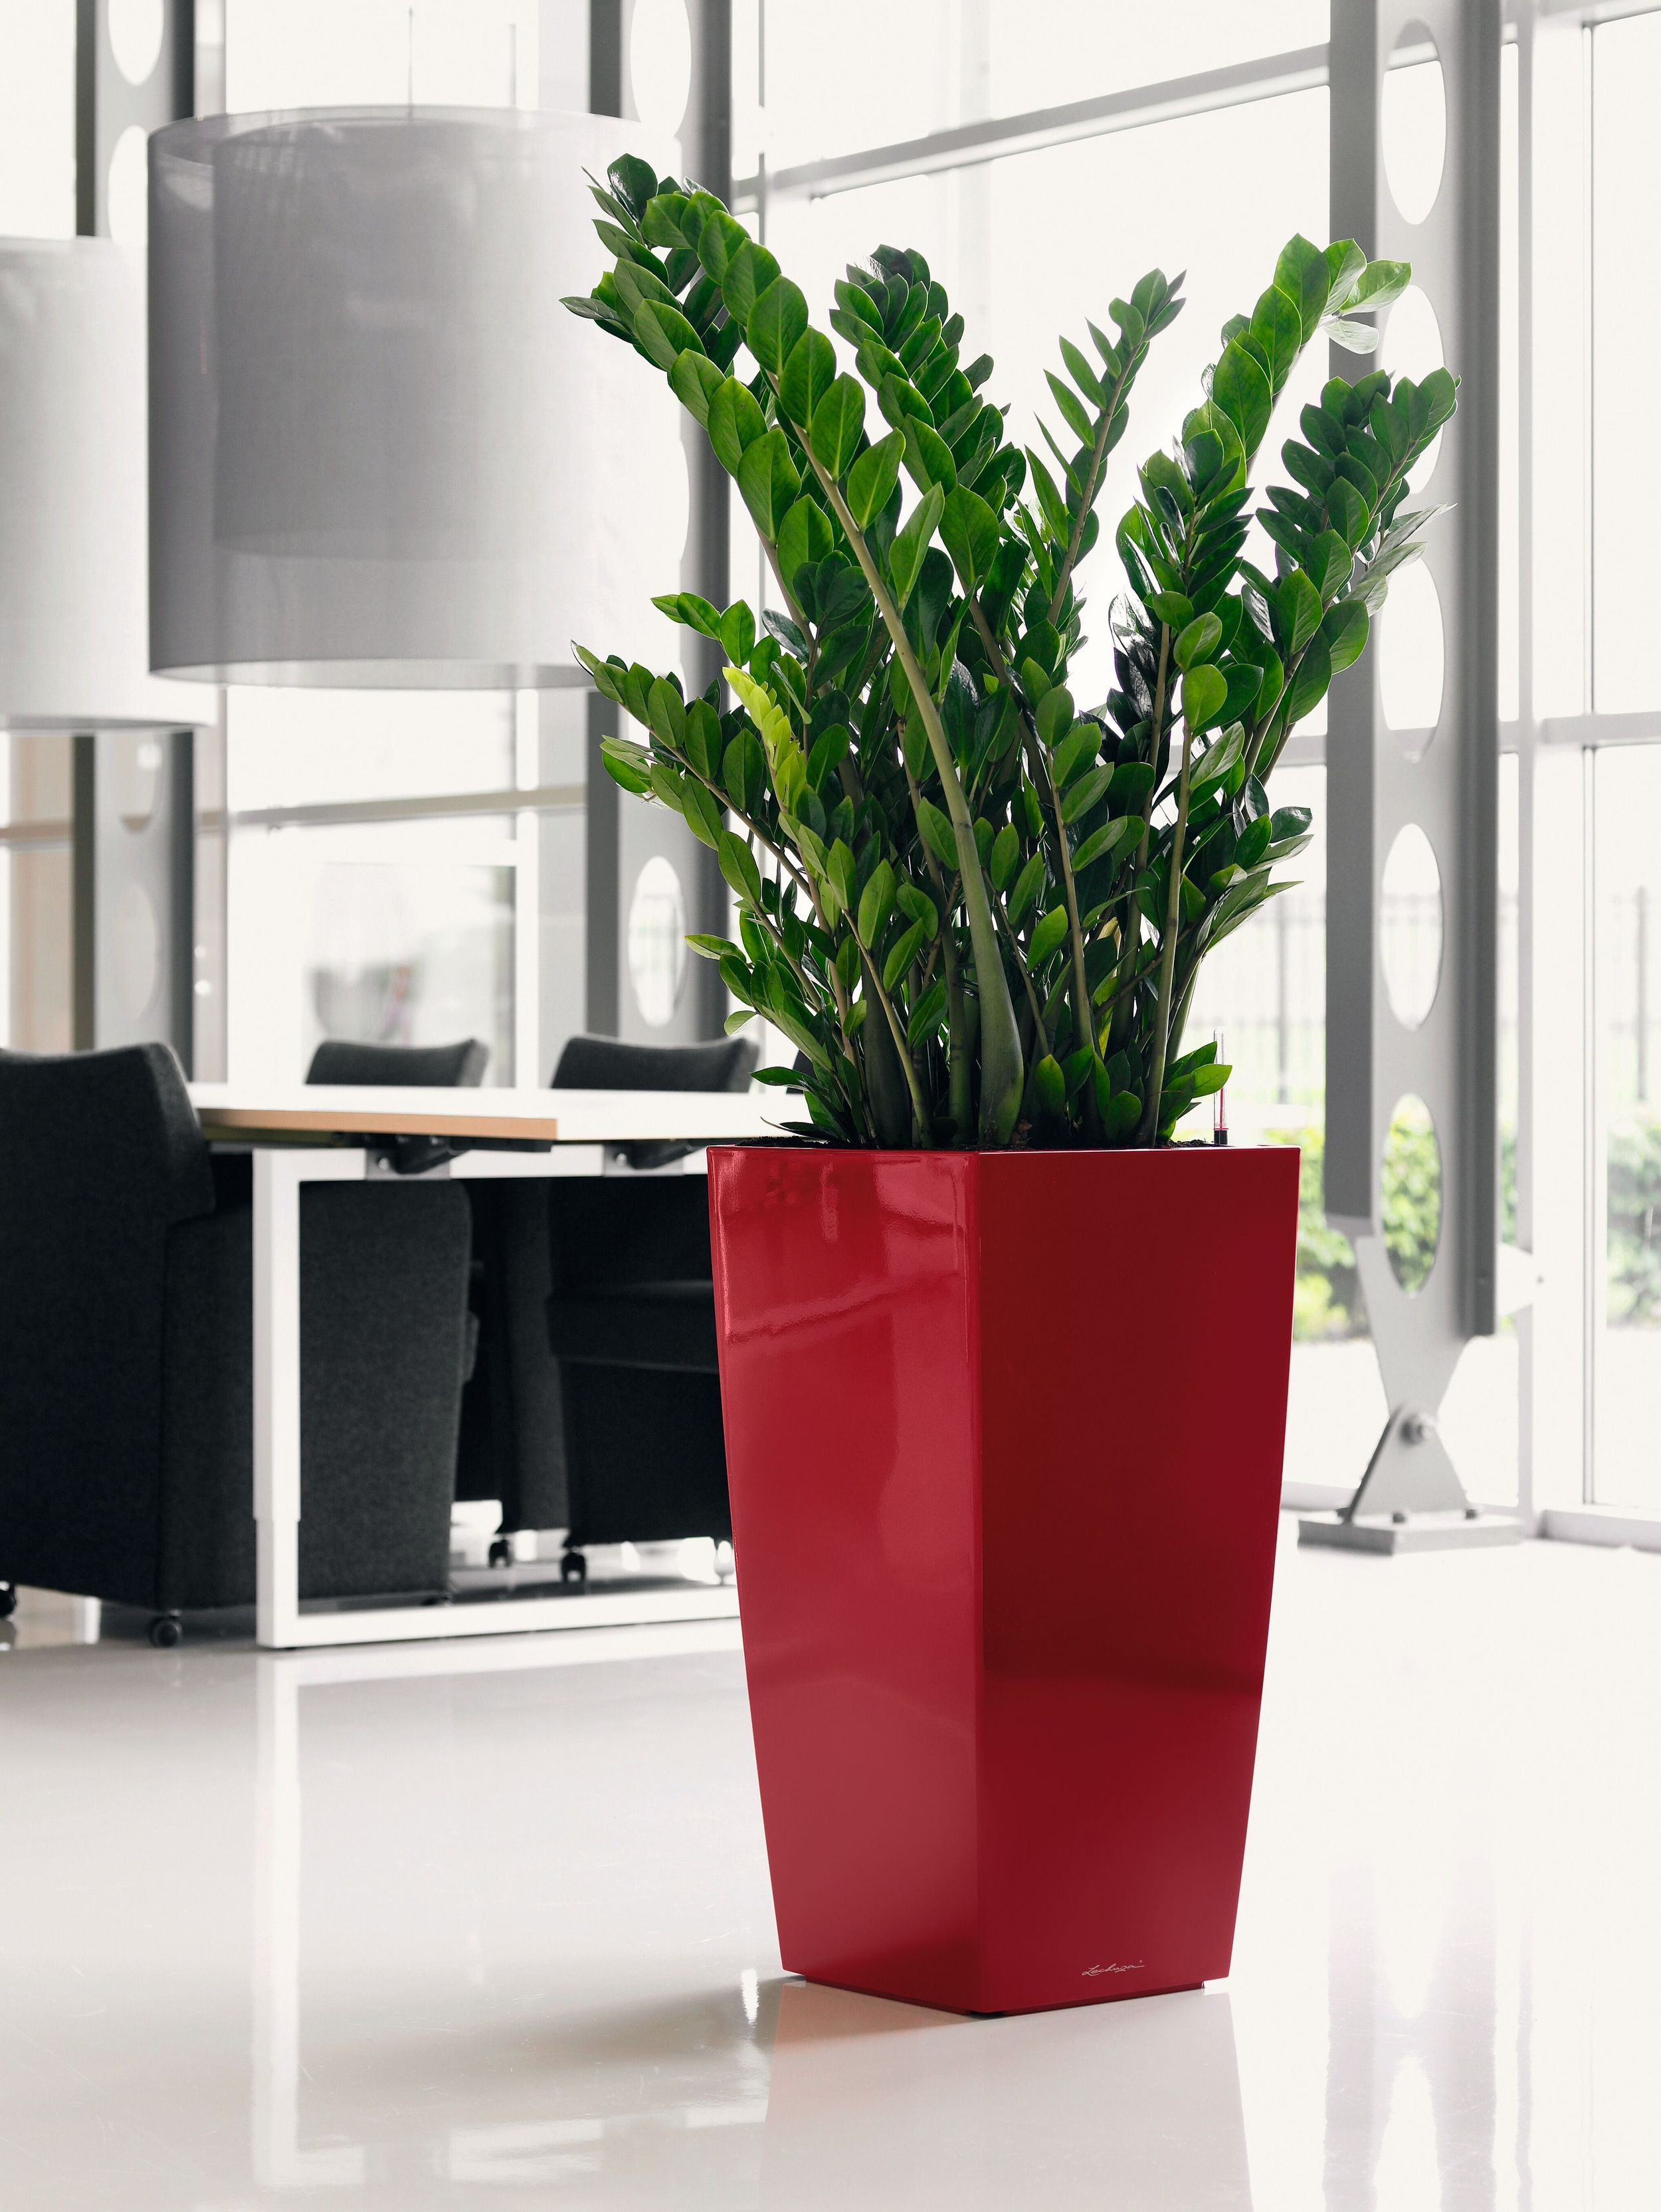 Cubico 50 Red with zz plant.jpg